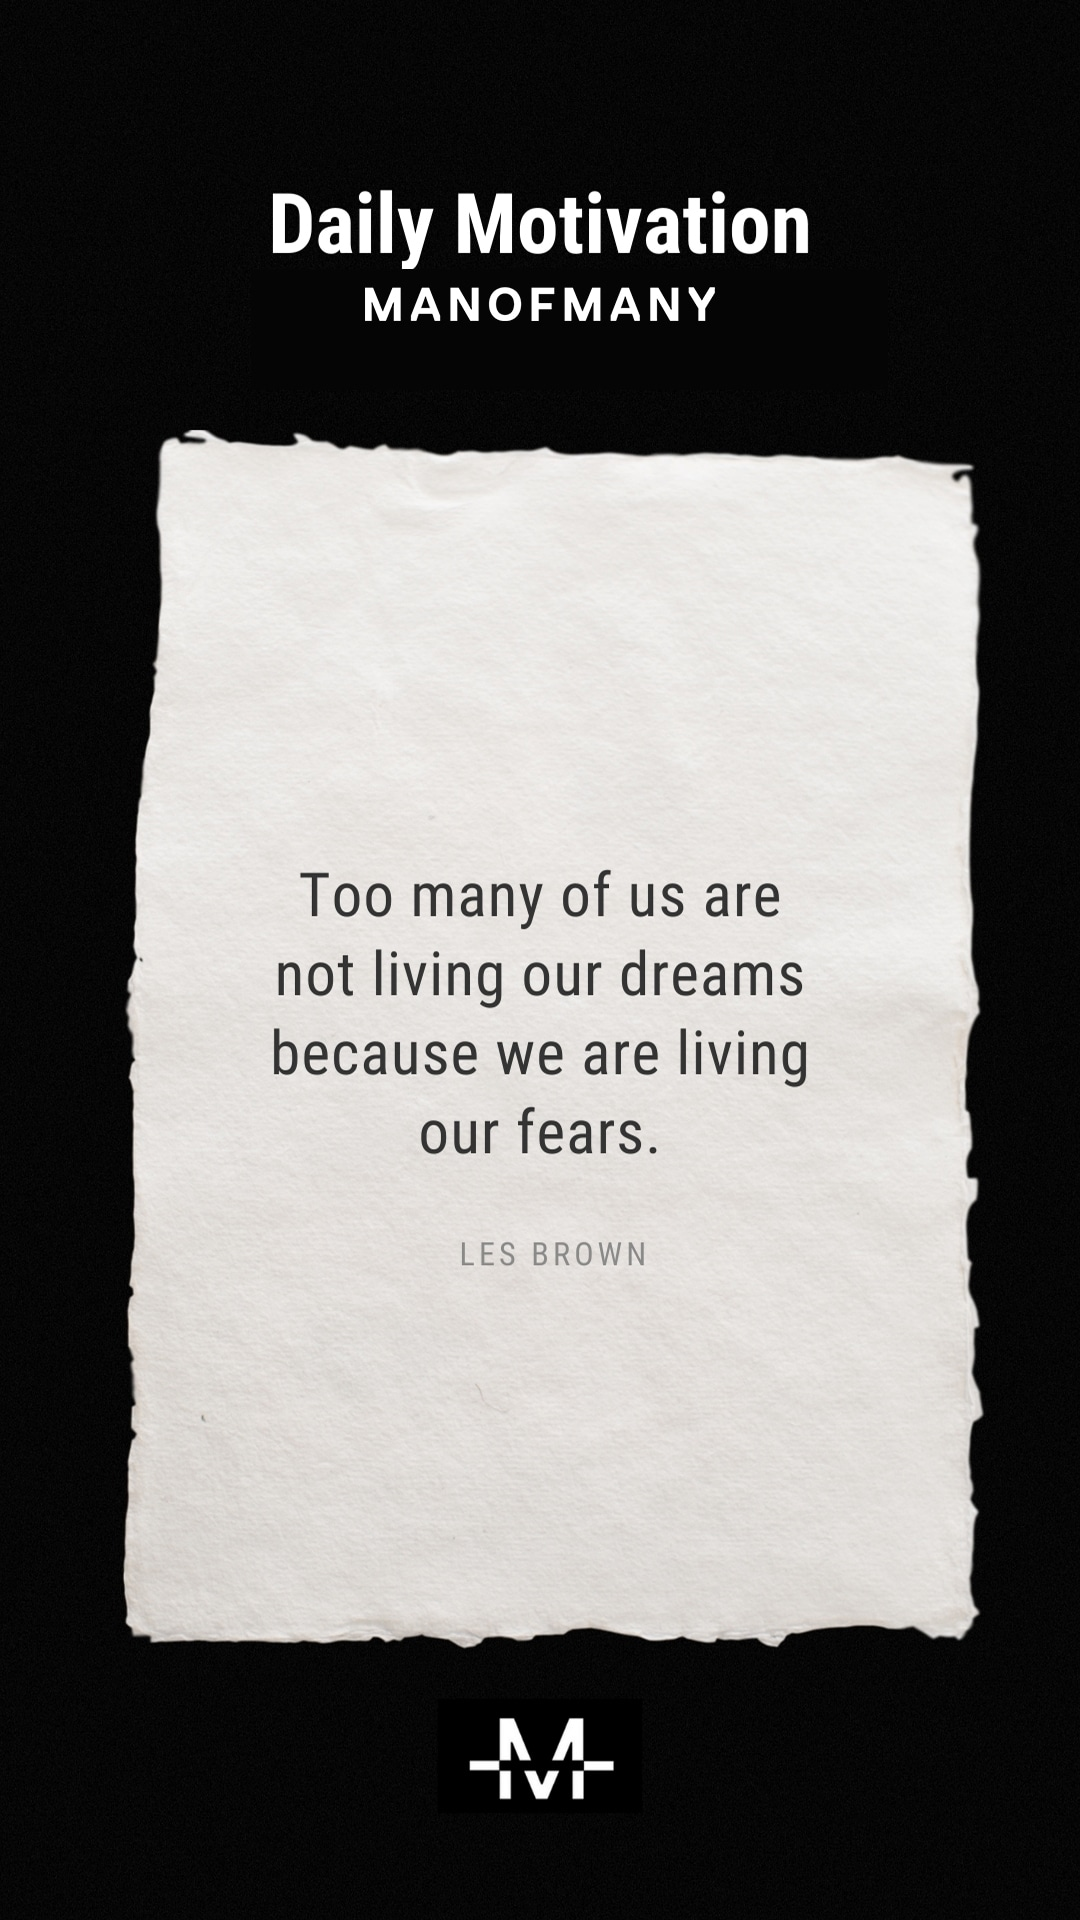 Too many of us are not living our dreams because we are living our fears. –Les Brown quote